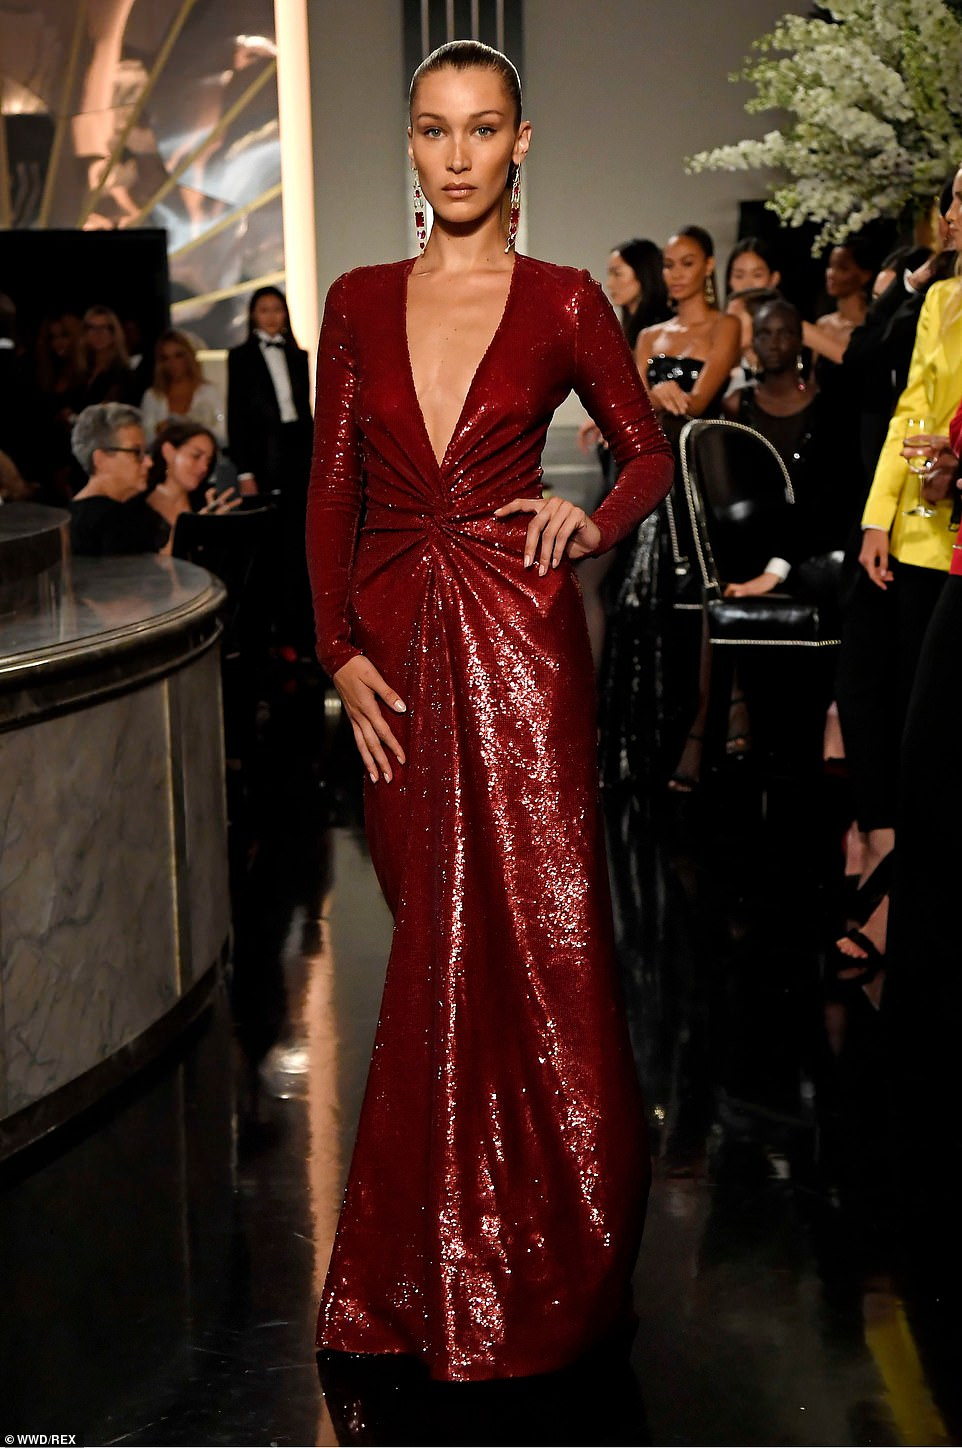 Bella Hadid flashes cleavage in plunging burgundy gown for Ralph Lauren's runway show during NYFW